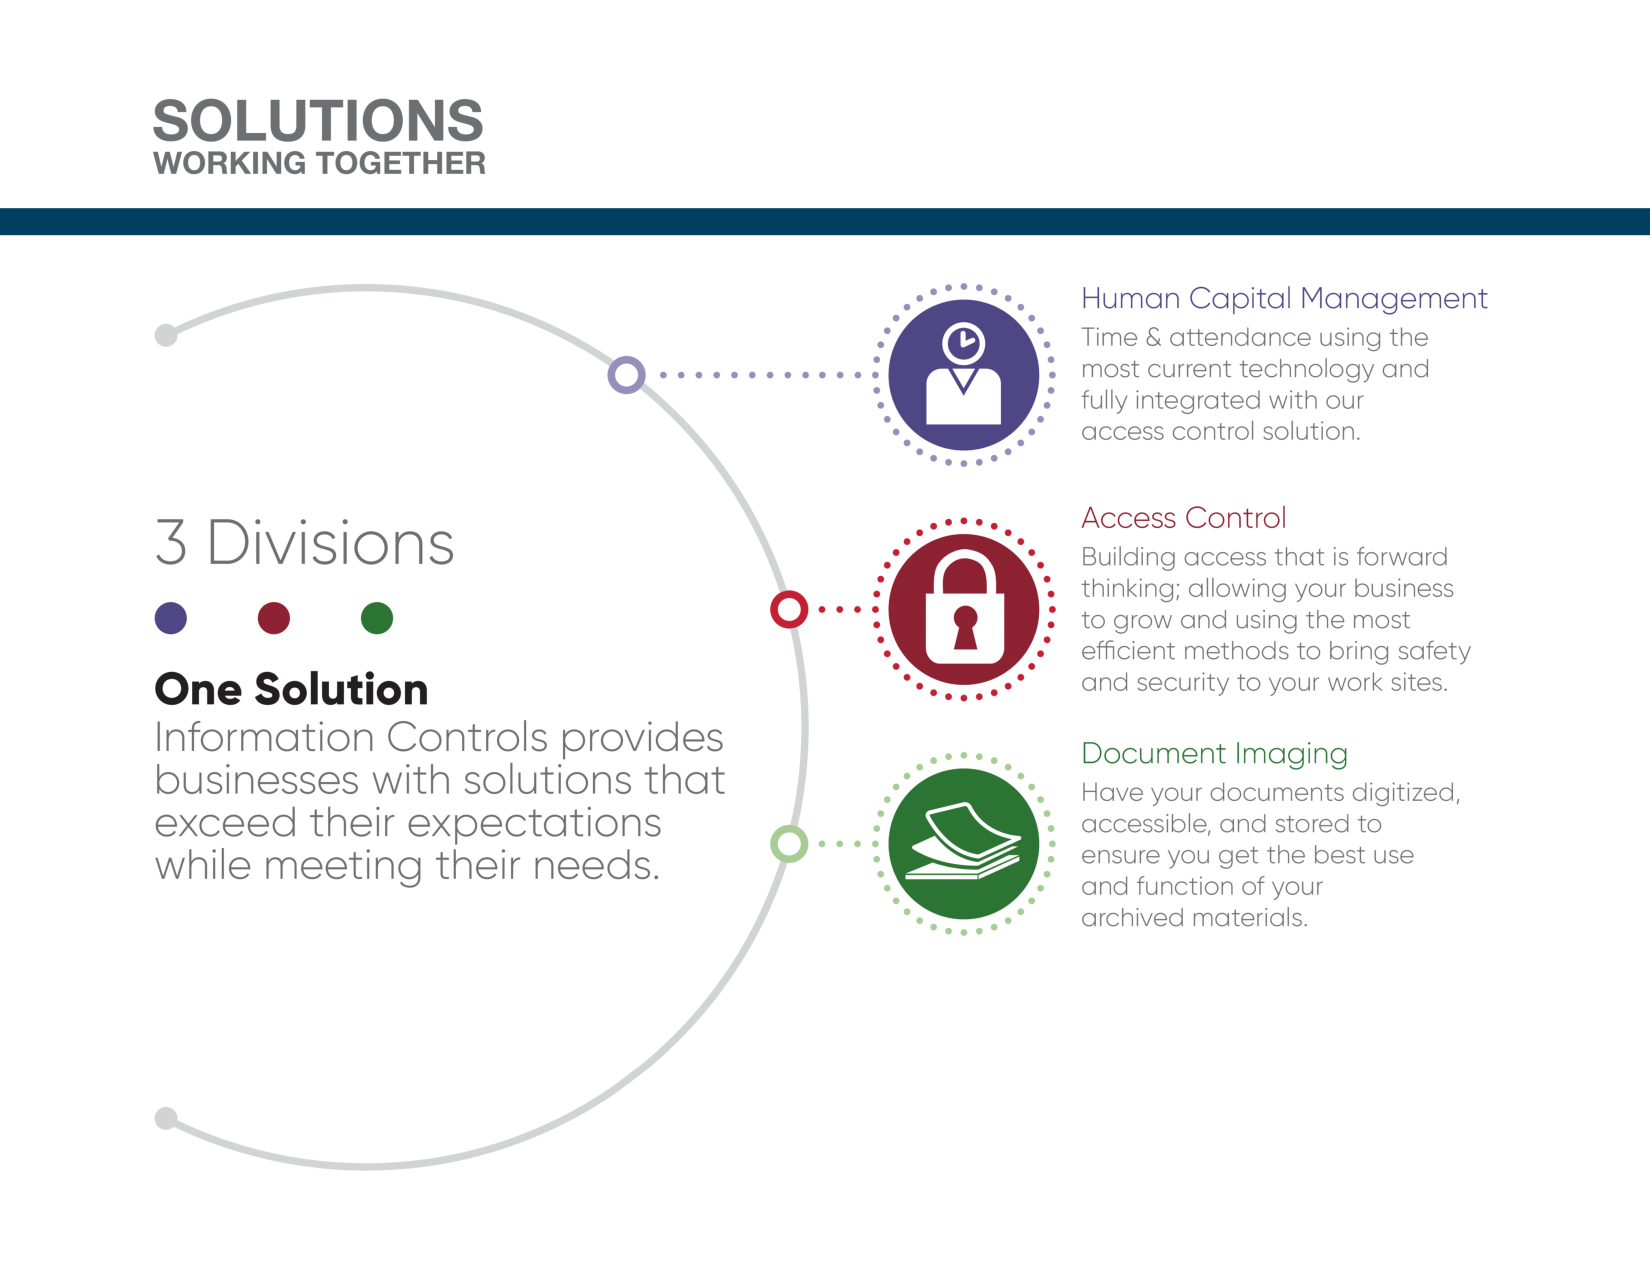 Information Controls - Three Divsions providing solutions for your workforce